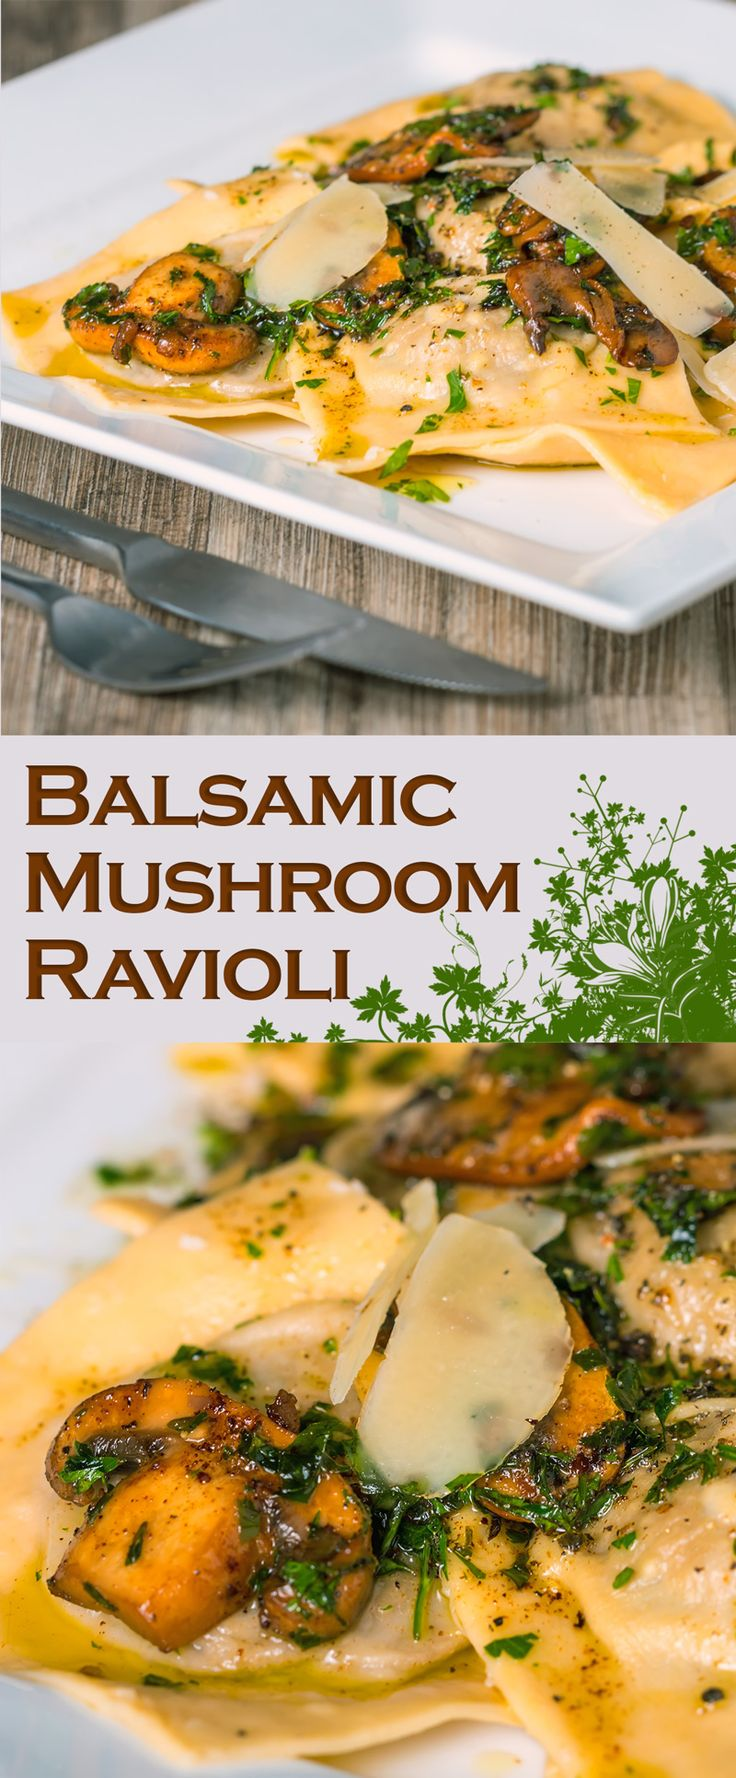 Balsamic and Garlic Mushroom Ravioli with butter sauce.